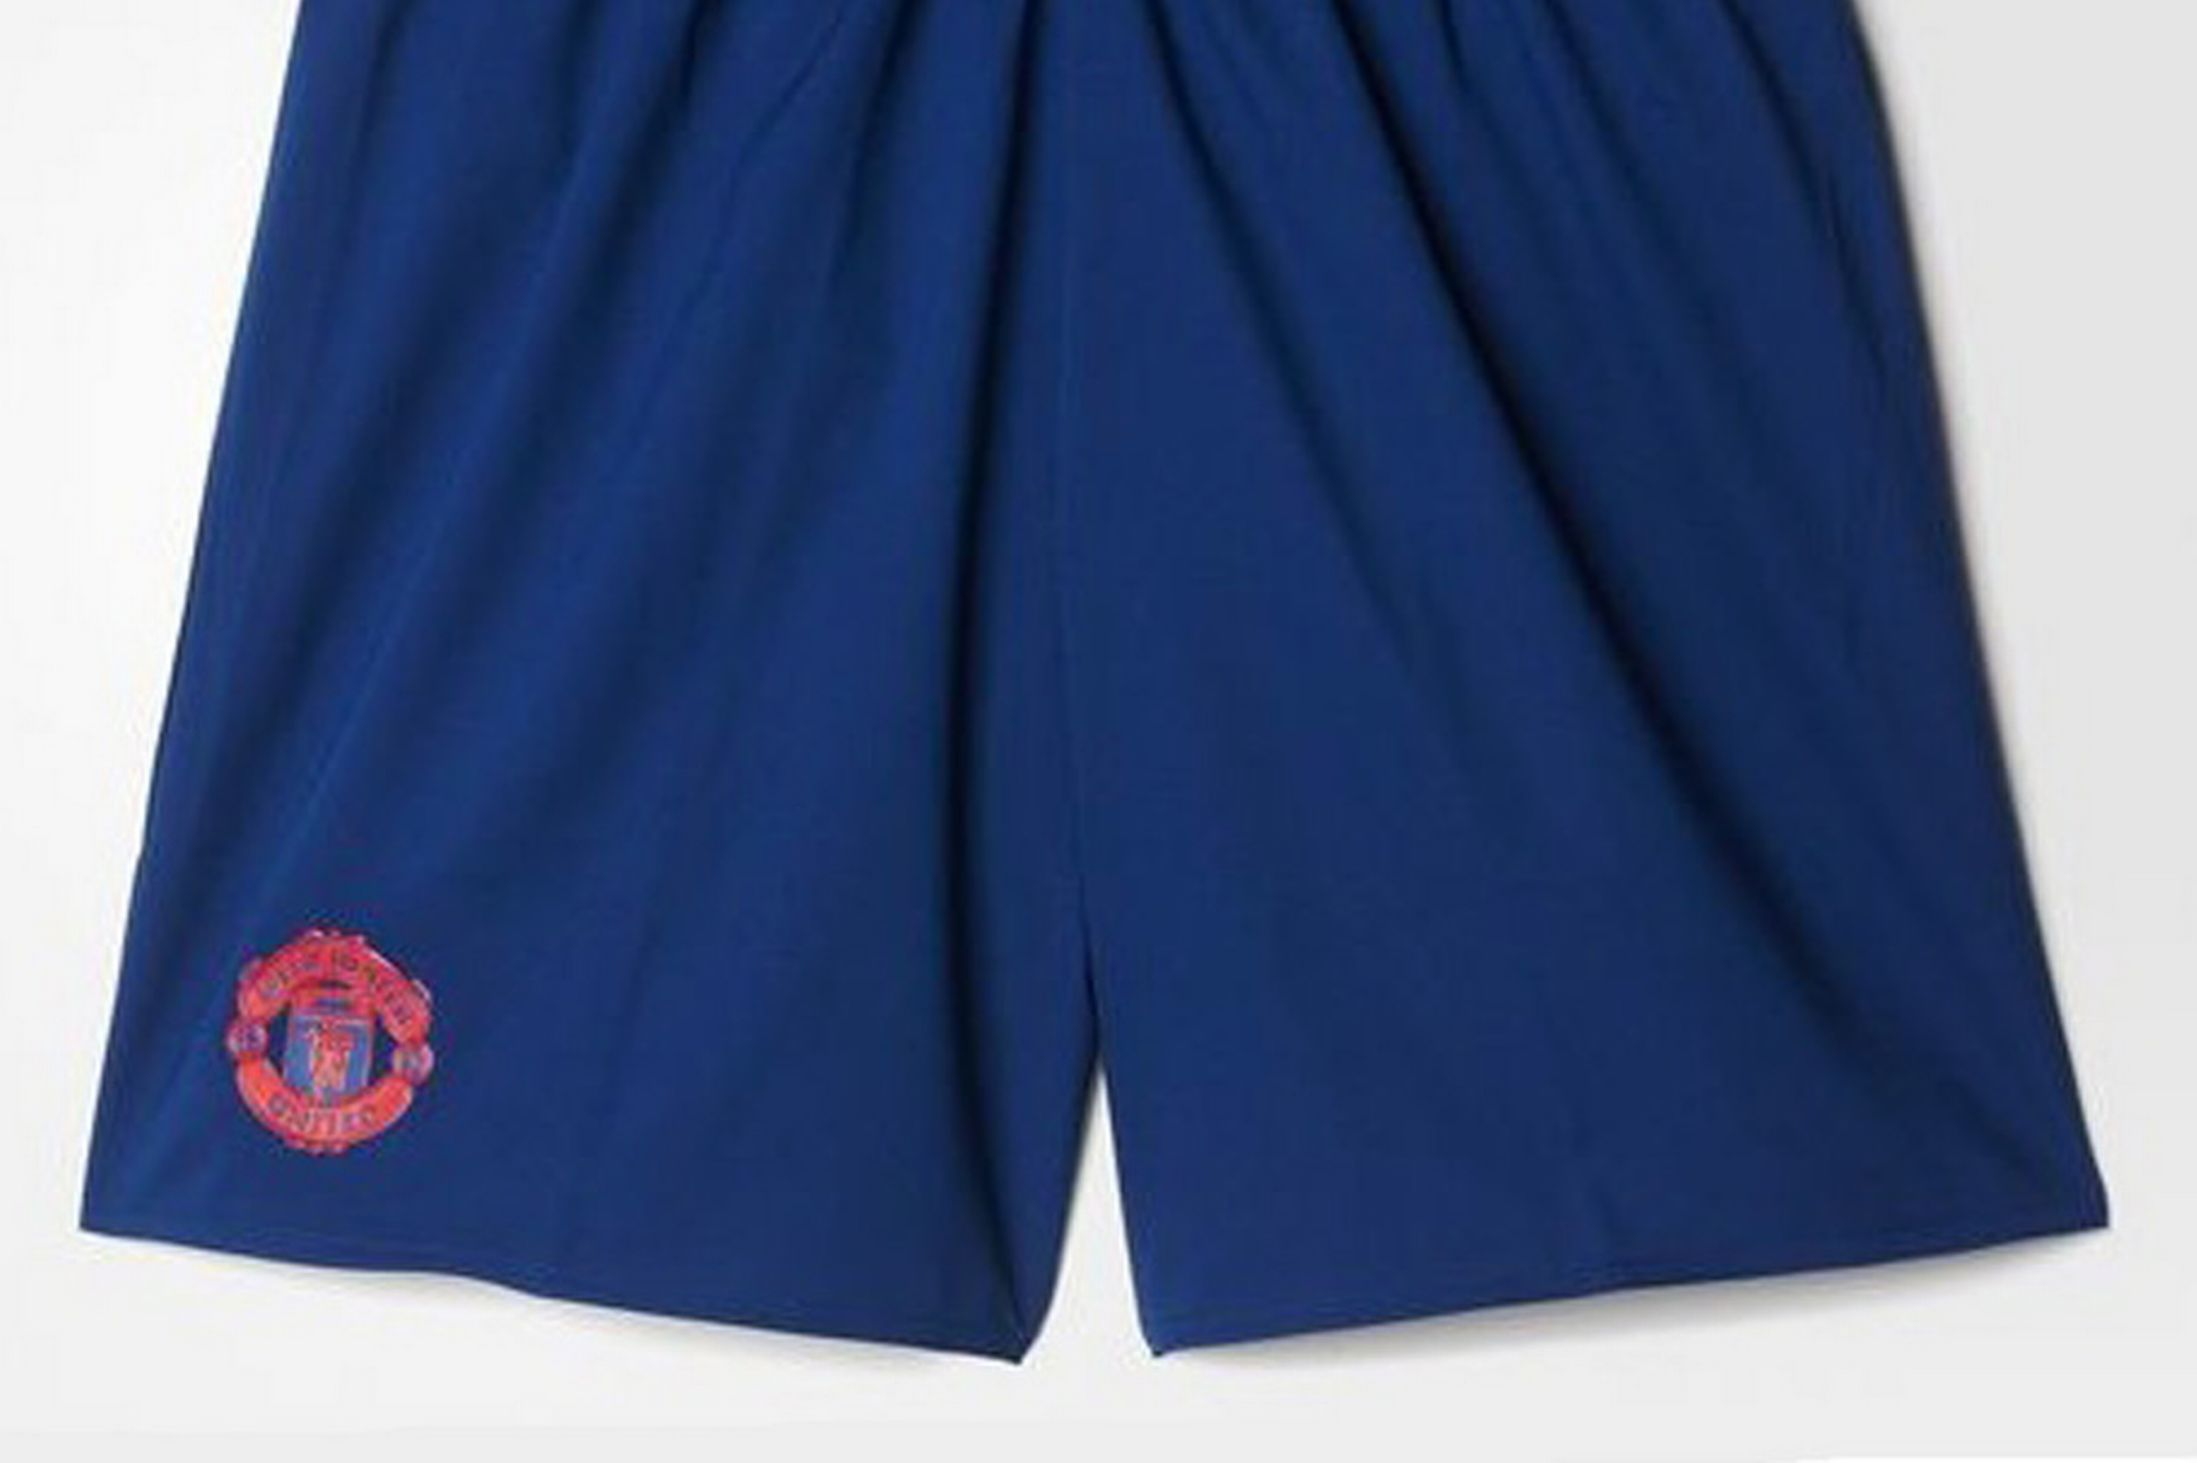 Manchester-United-Away-Shorts-2016-17